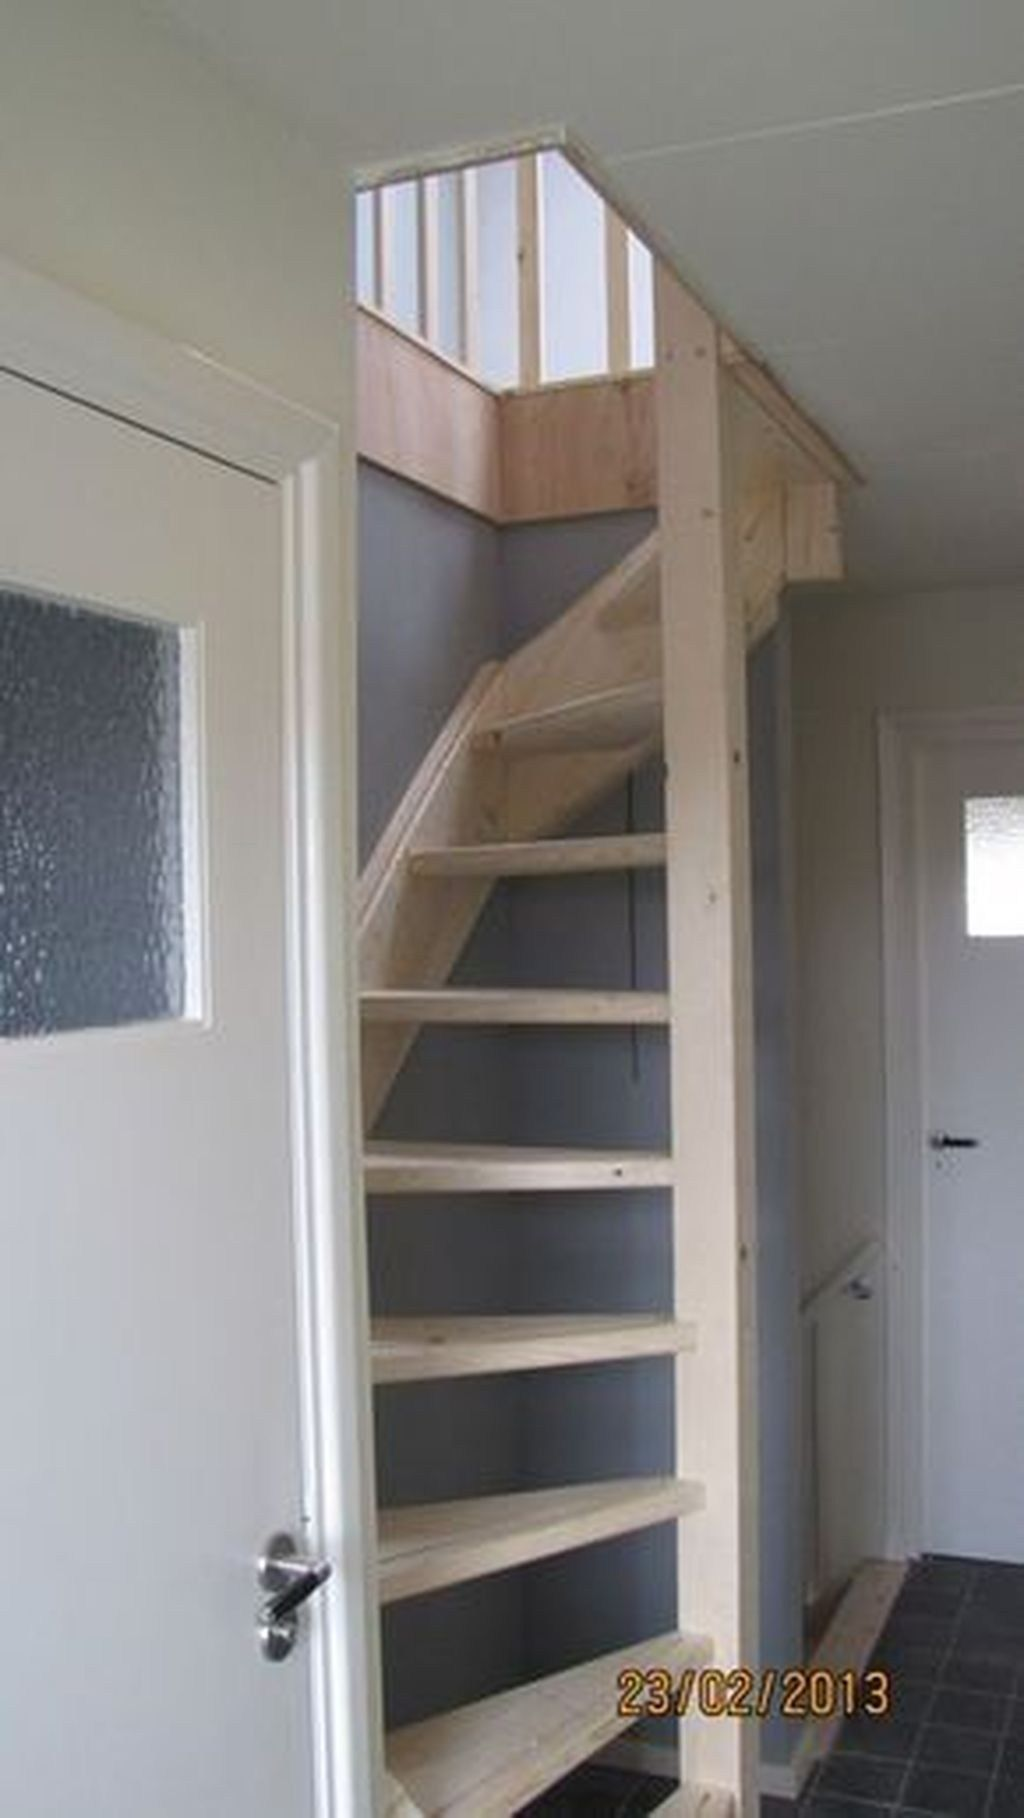 Simple Space Saving Furniture Ideas For Home 21 Attic Stairs Diy Attic Bedroom Storage Loft Stairs